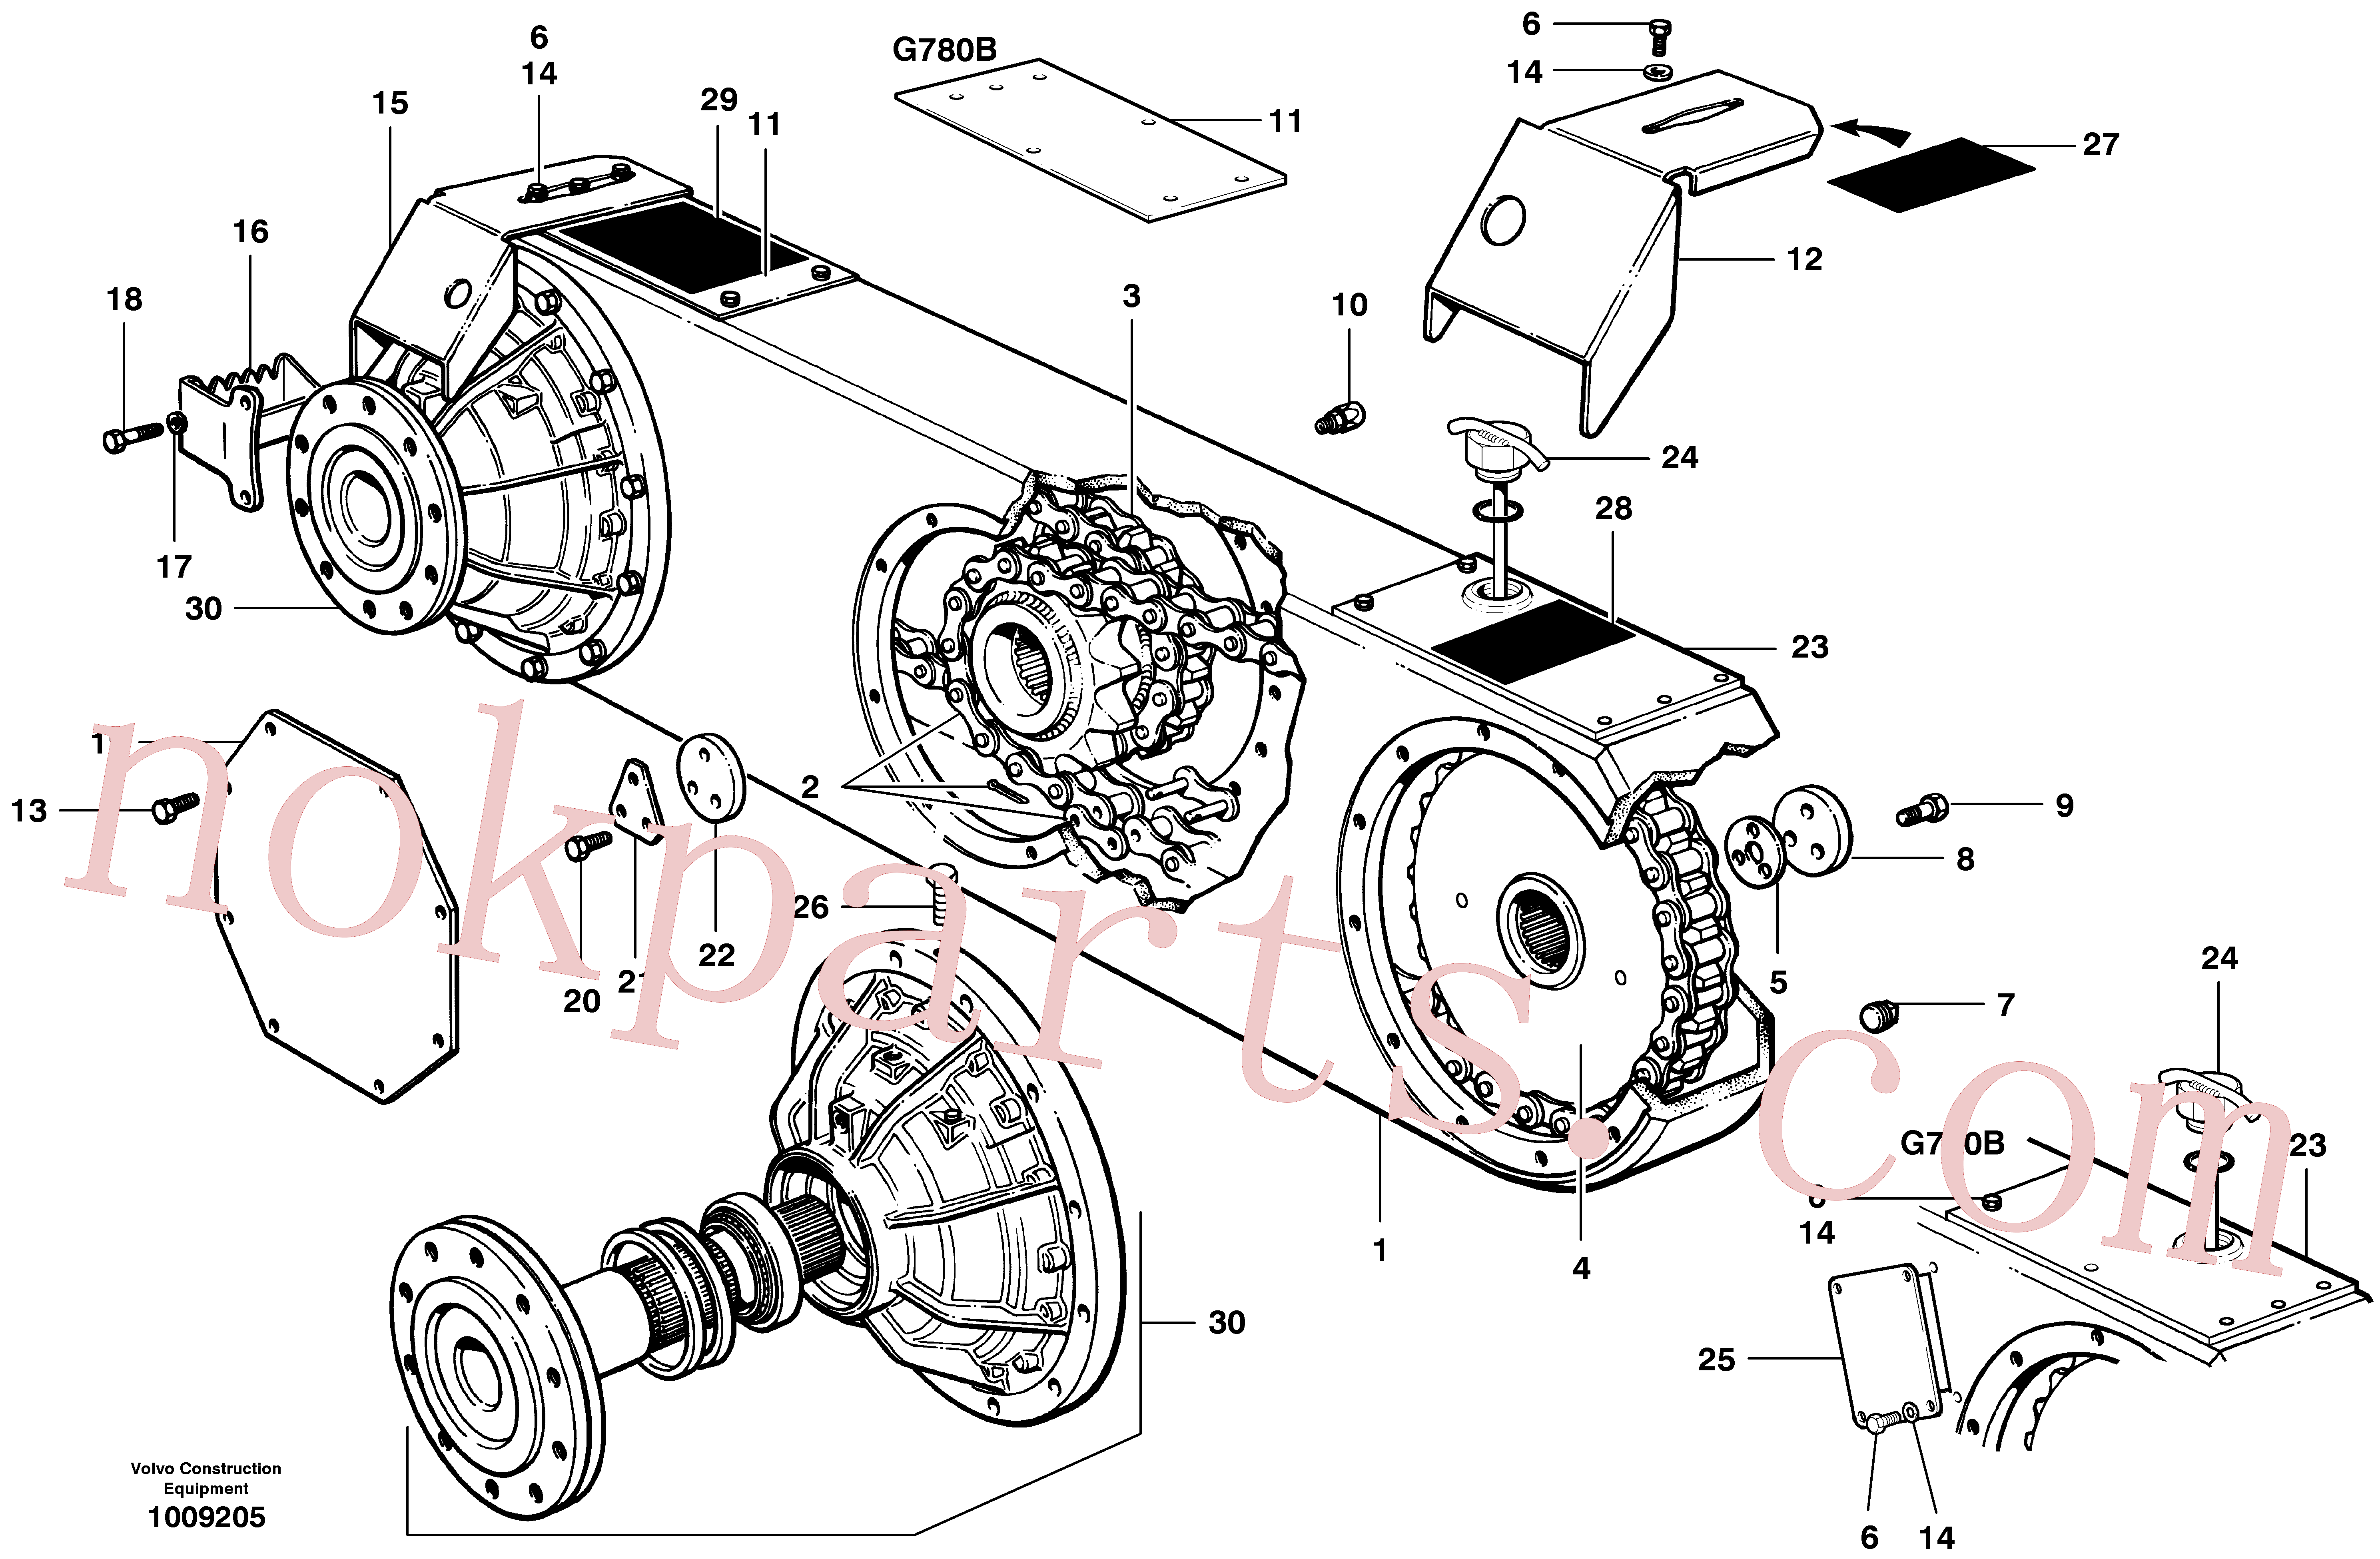 CH50A-0608ZI for Volvo Tandems(1009205 assembly)